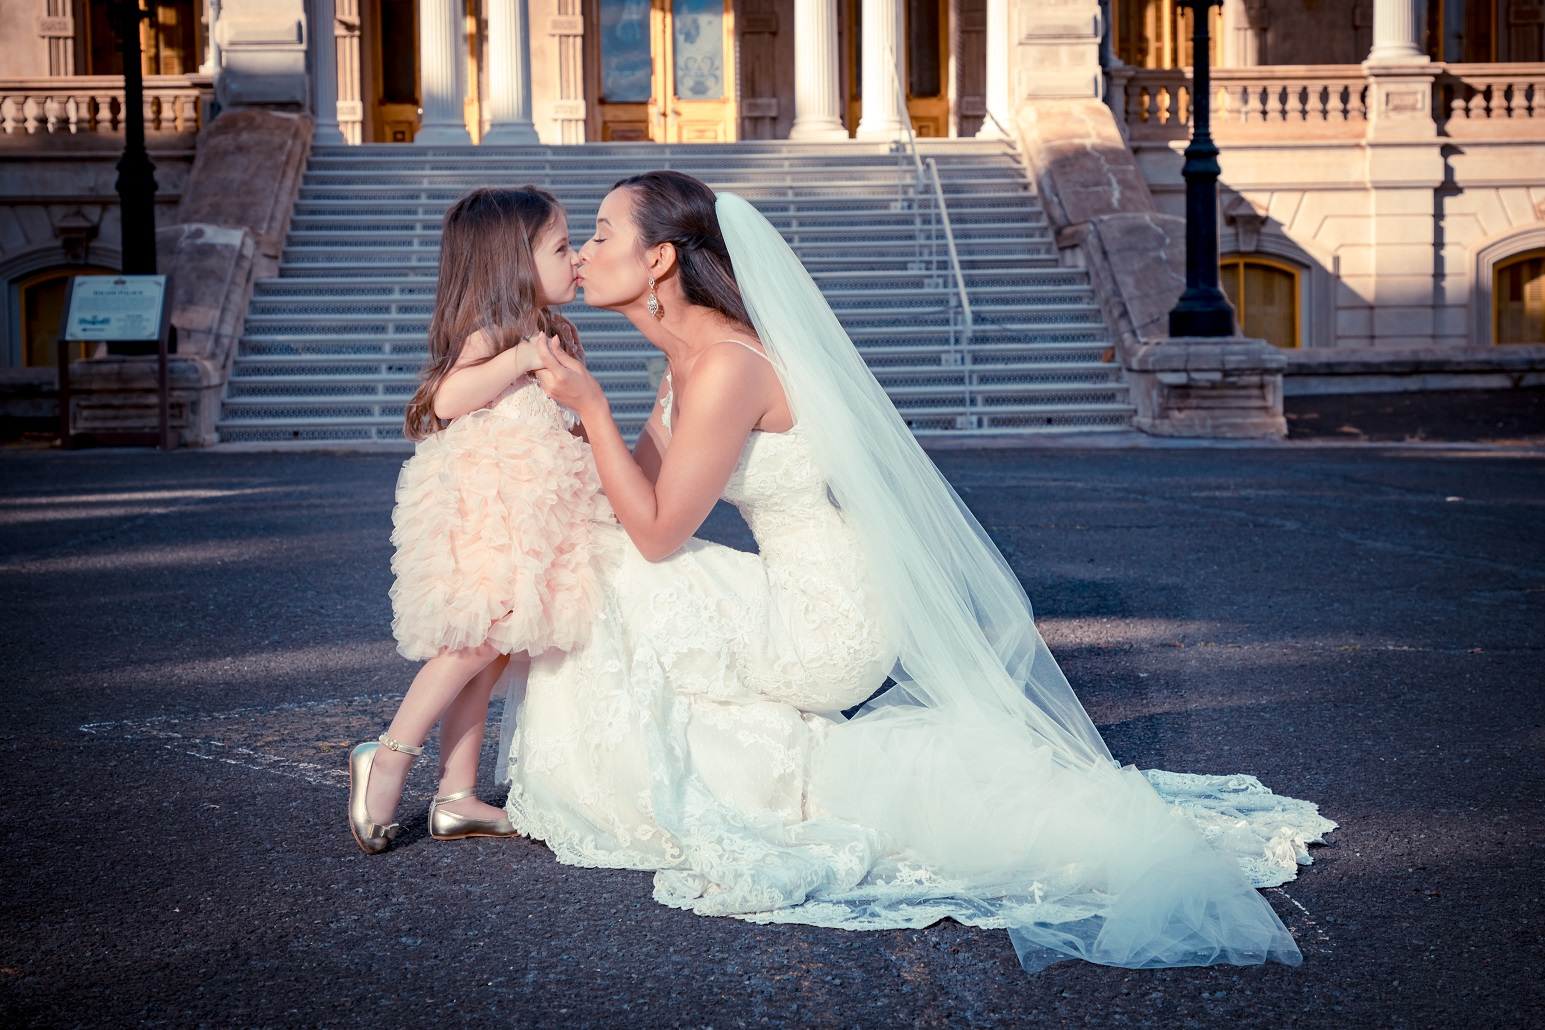 Spontaneous kiss by flower girl during bridal portraits, flashed